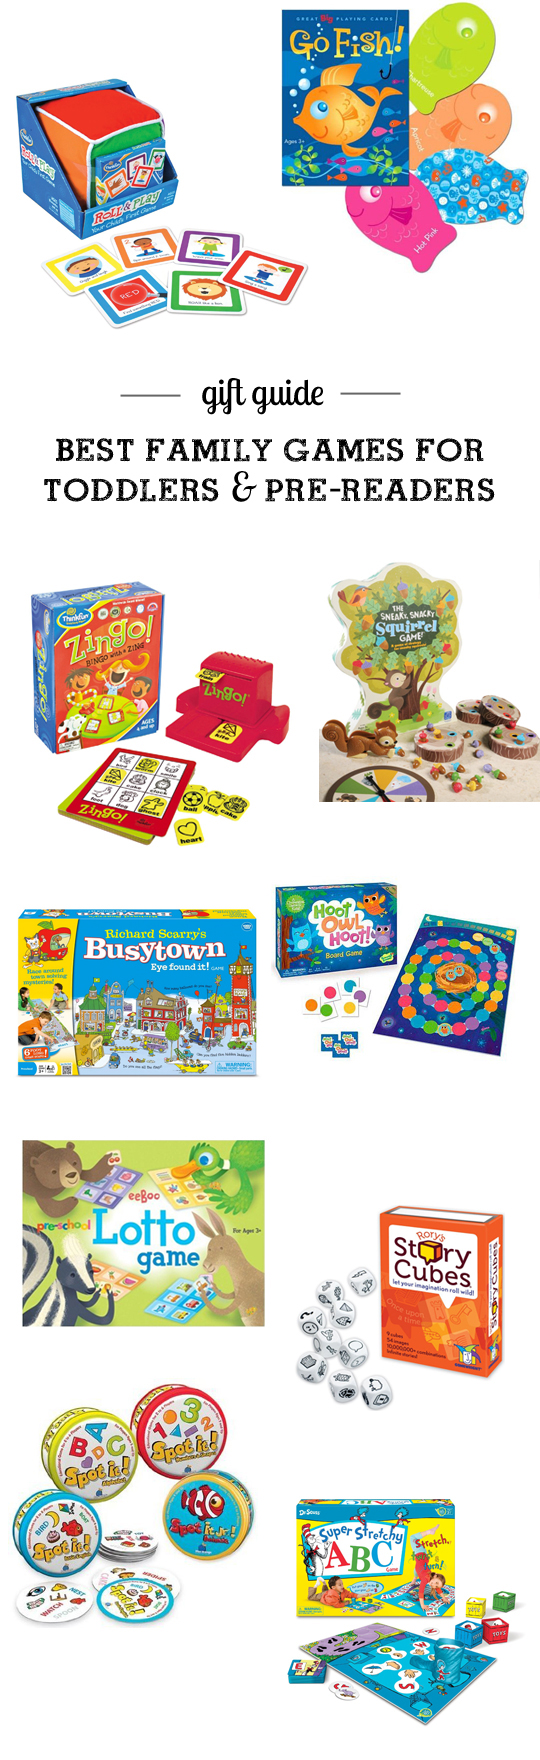 MPMK Toy Gift Guide: Best kid games to start a family game night with toddlers and pre-readers - Really appreciate the detailed reviews and useful age recommendations in this gift guide.